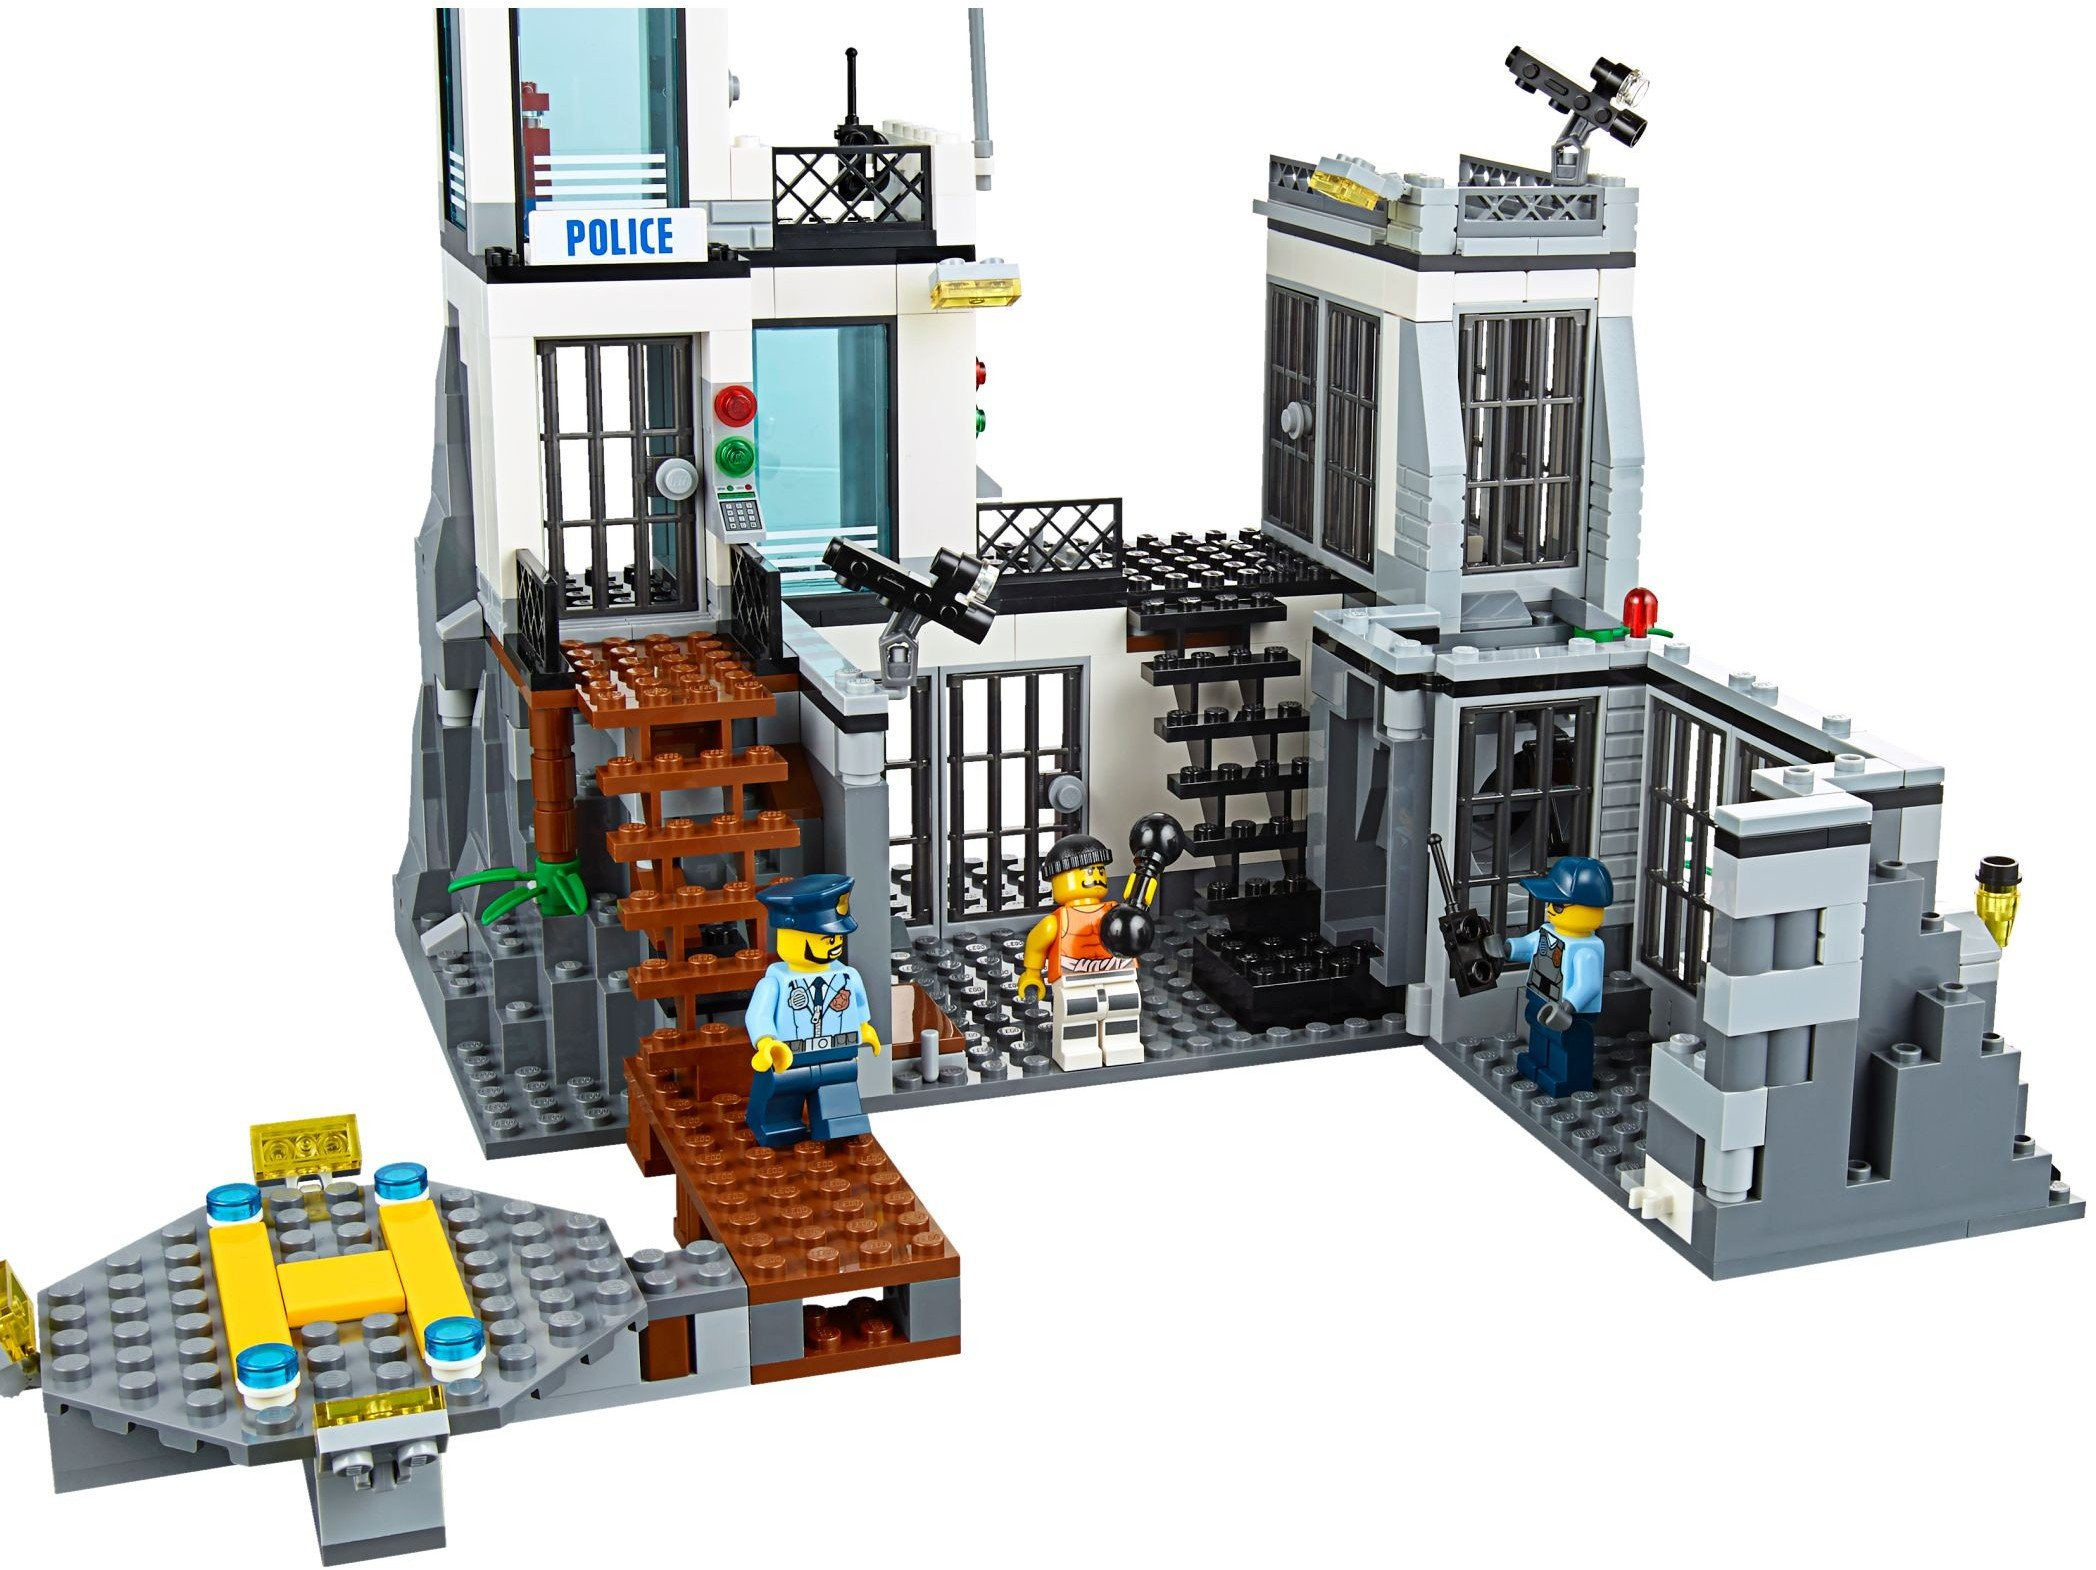 LEGO 60130 City Police Prison Island Building Toy 8-minifigures